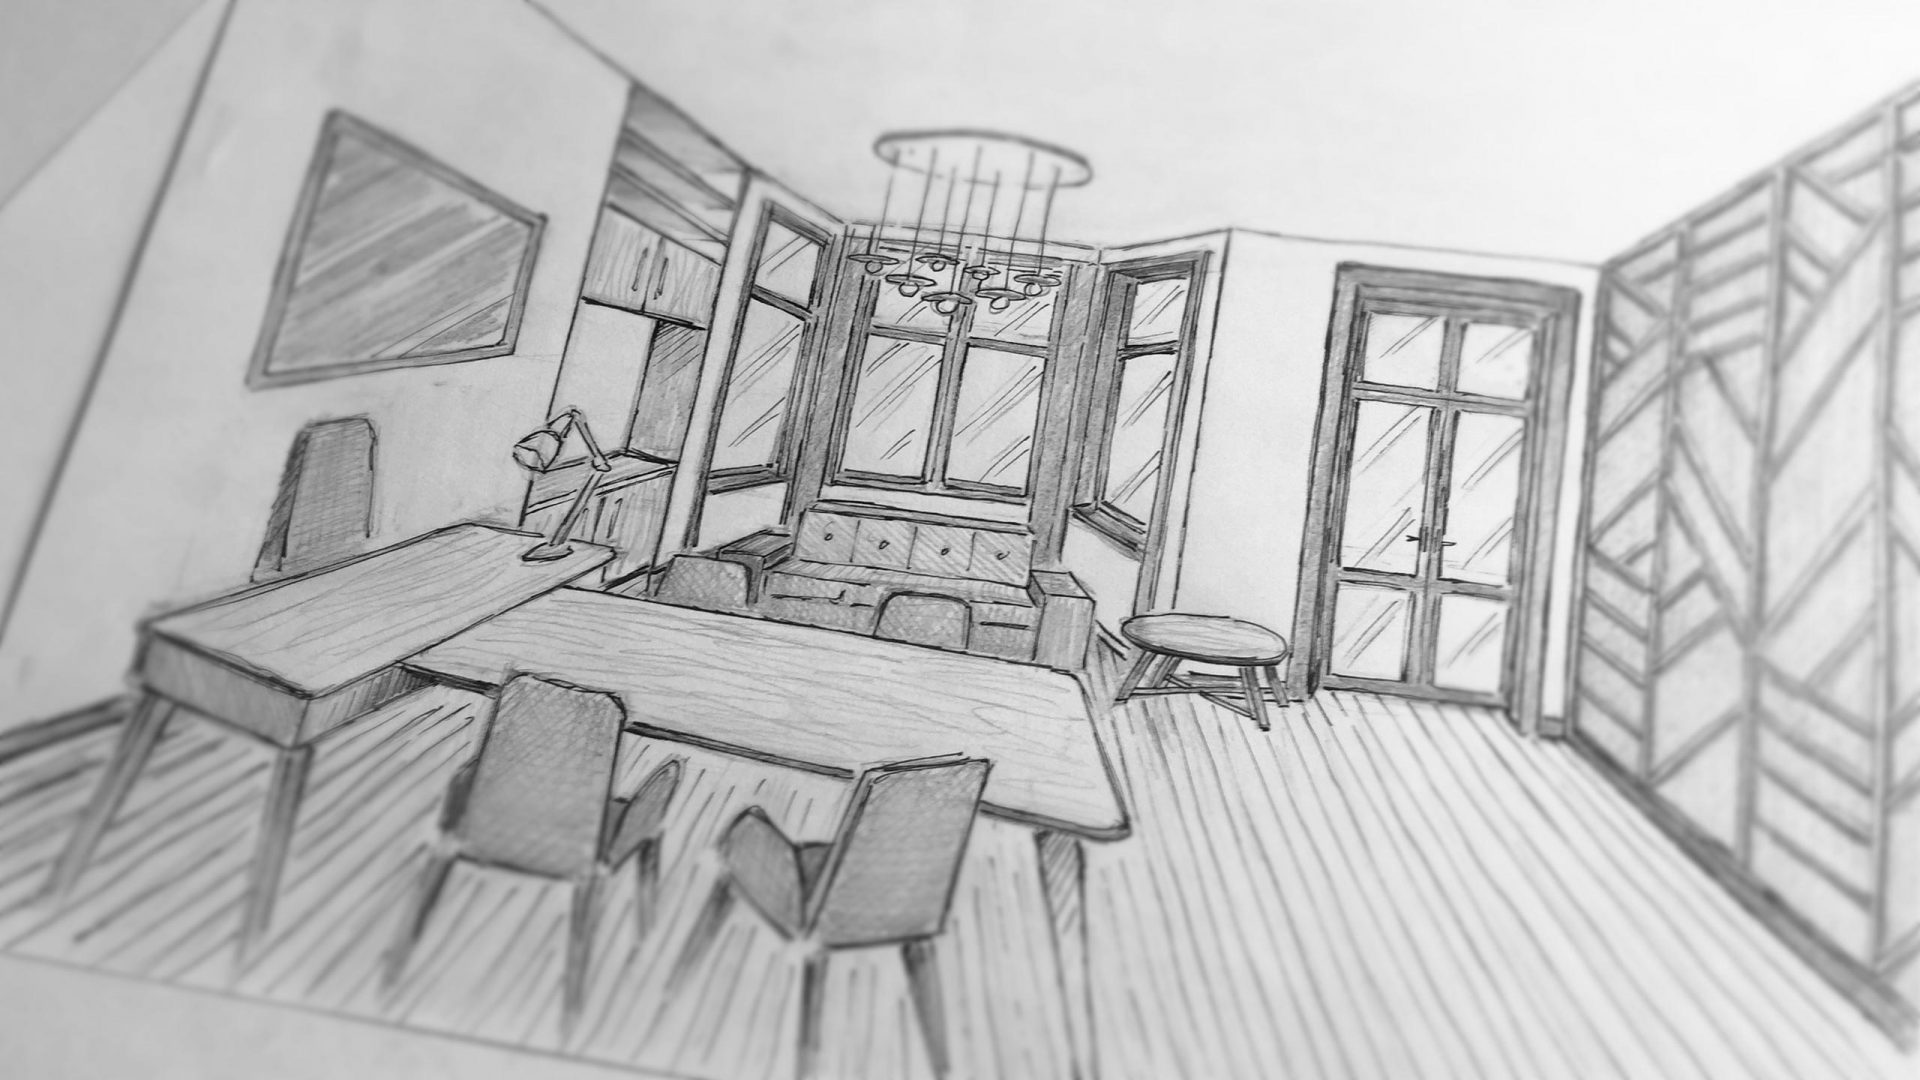 Sketch for an office design by Liqui showing the meeting room.